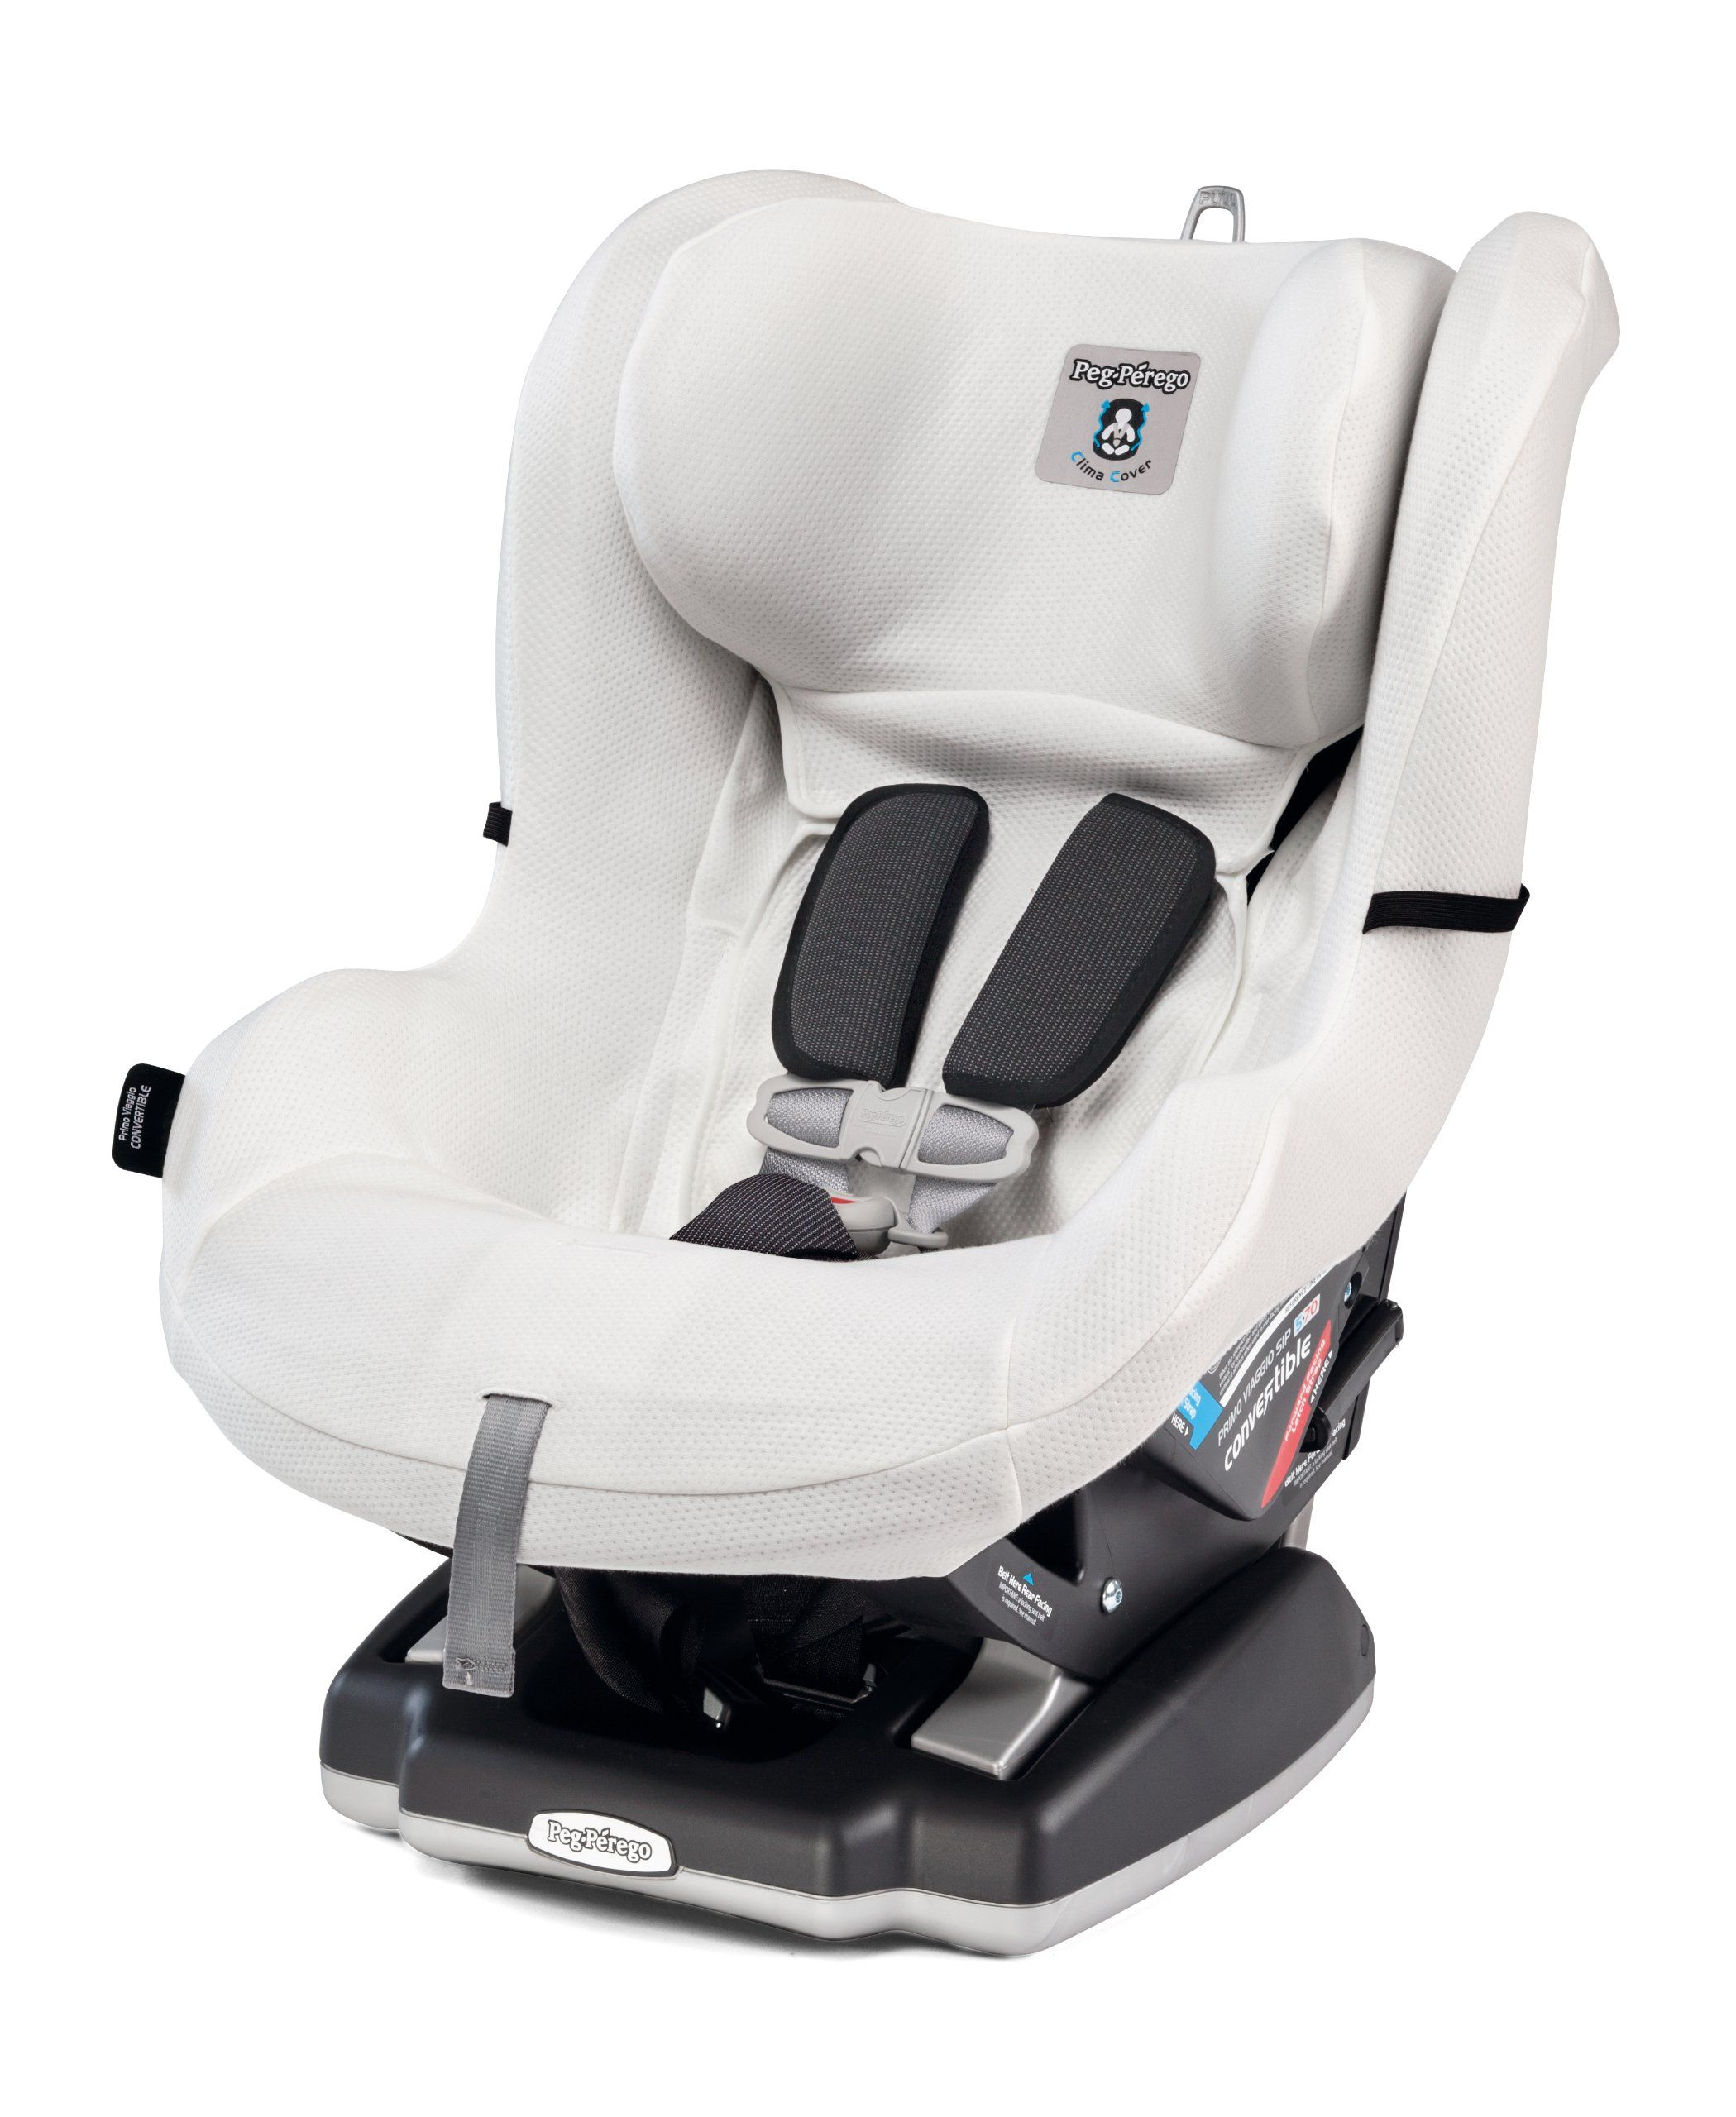 Peg Perego Convertible Clima Cover, White Car seats